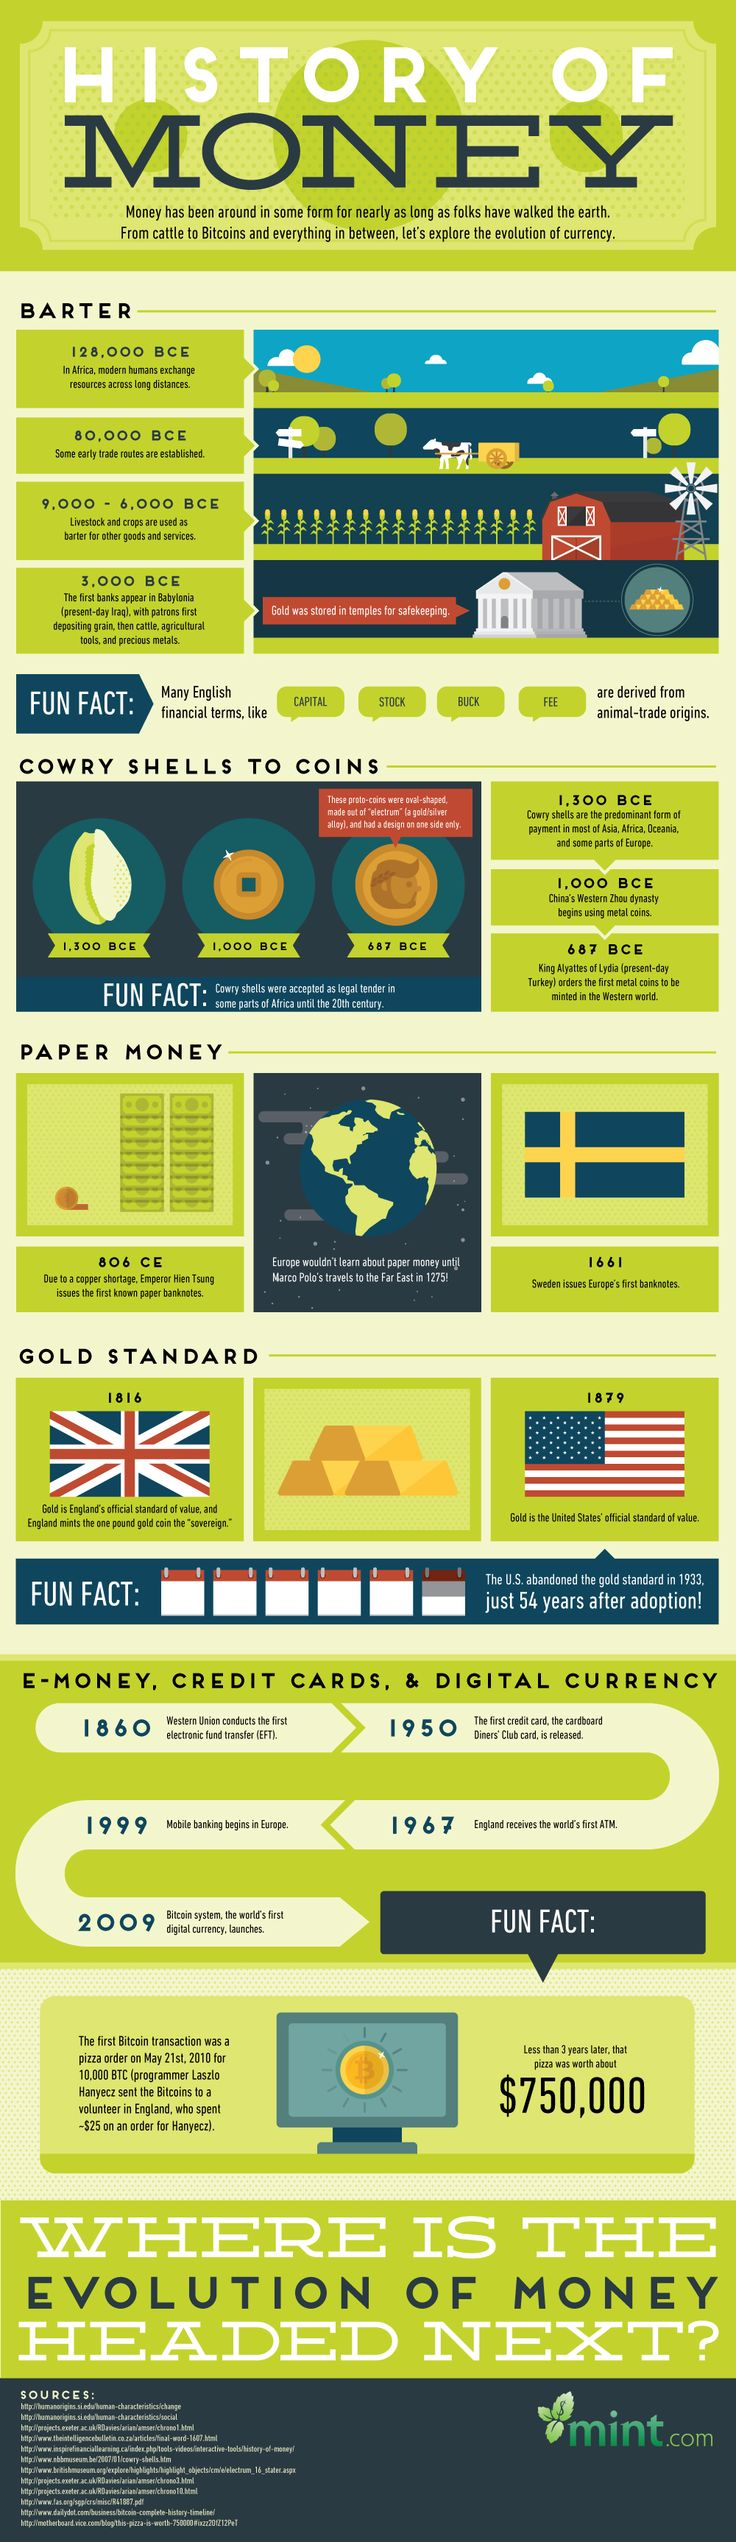 The History of Money - Find out how money has evolved from livestock to Bitcoins with this infographic!